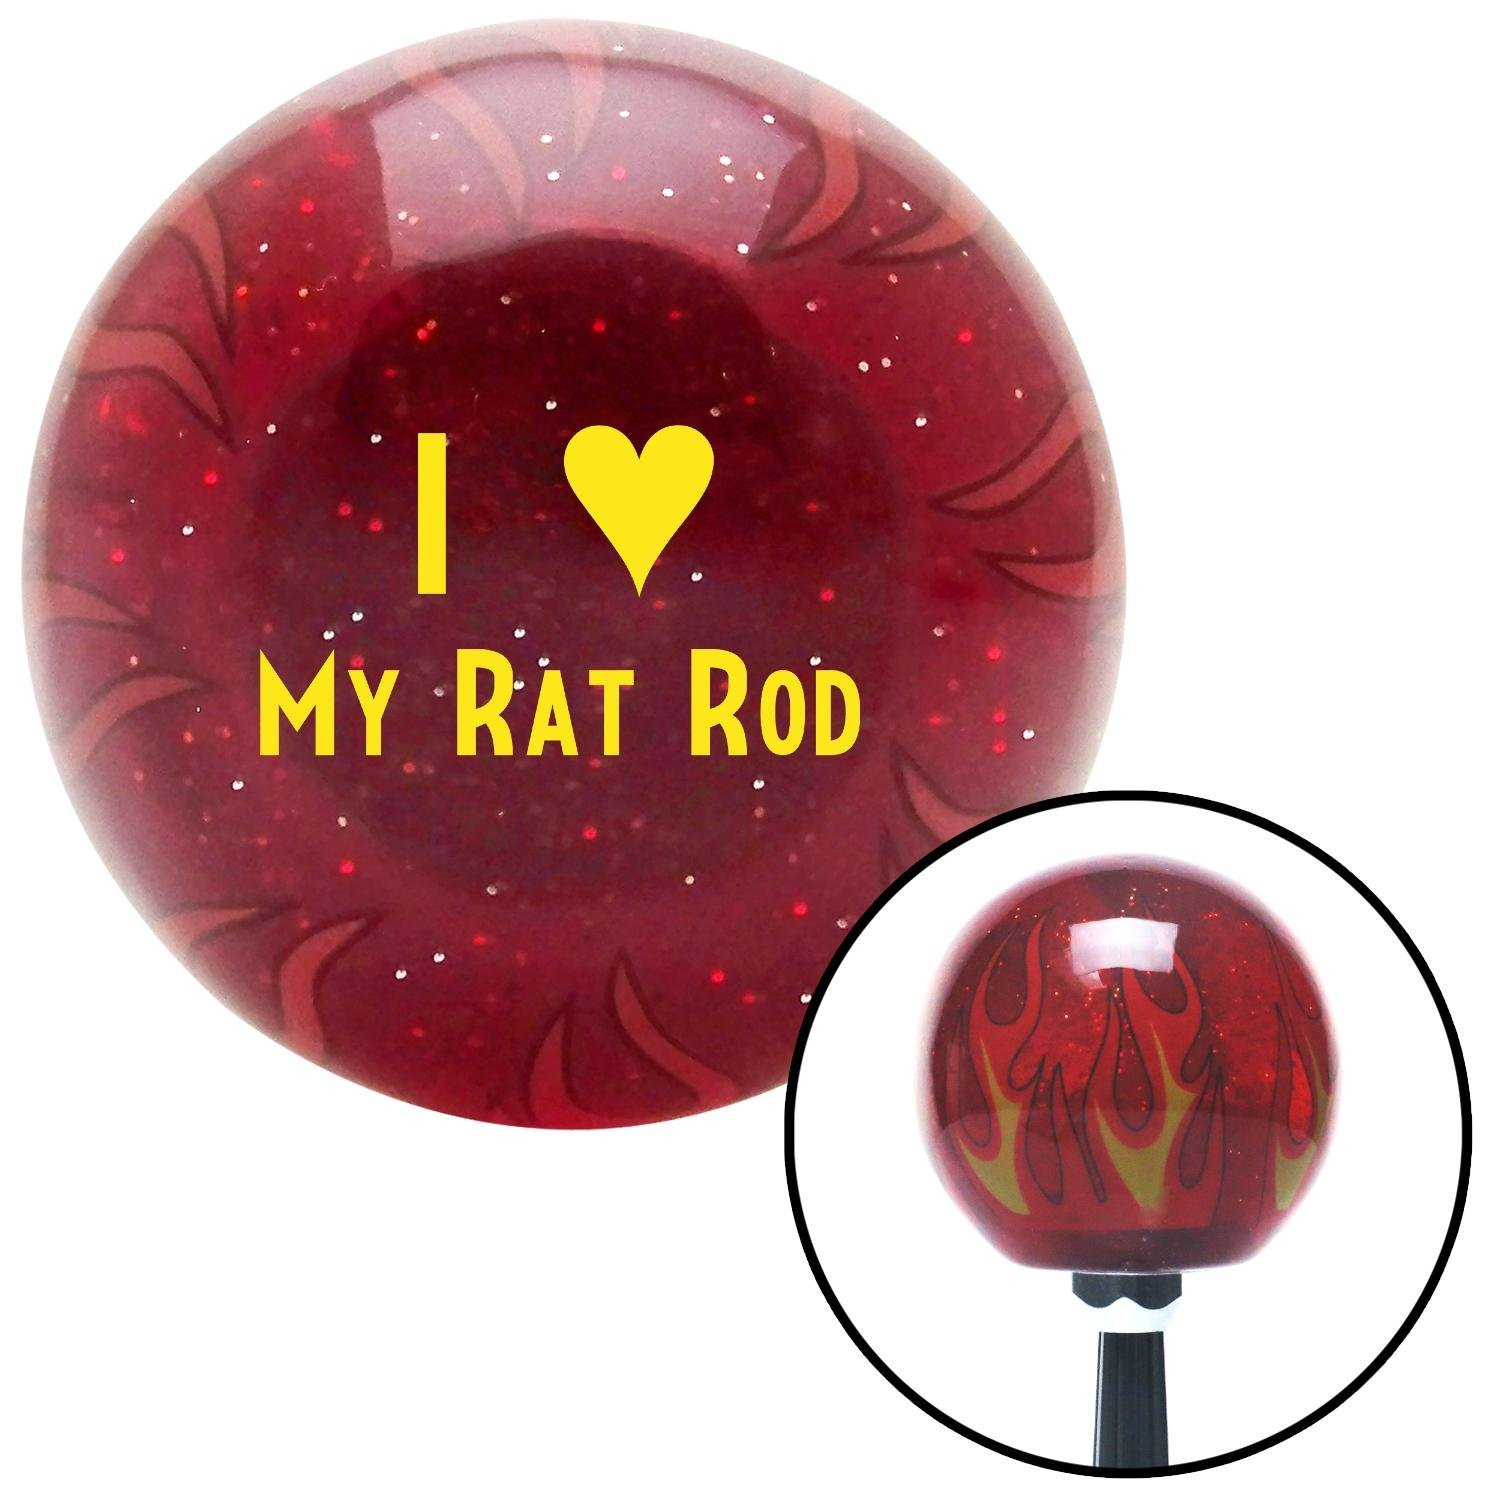 Yellow I 3 My Rat Rod American Shifter 237431 Red Flame Metal Flake Shift Knob with M16 x 1.5 Insert